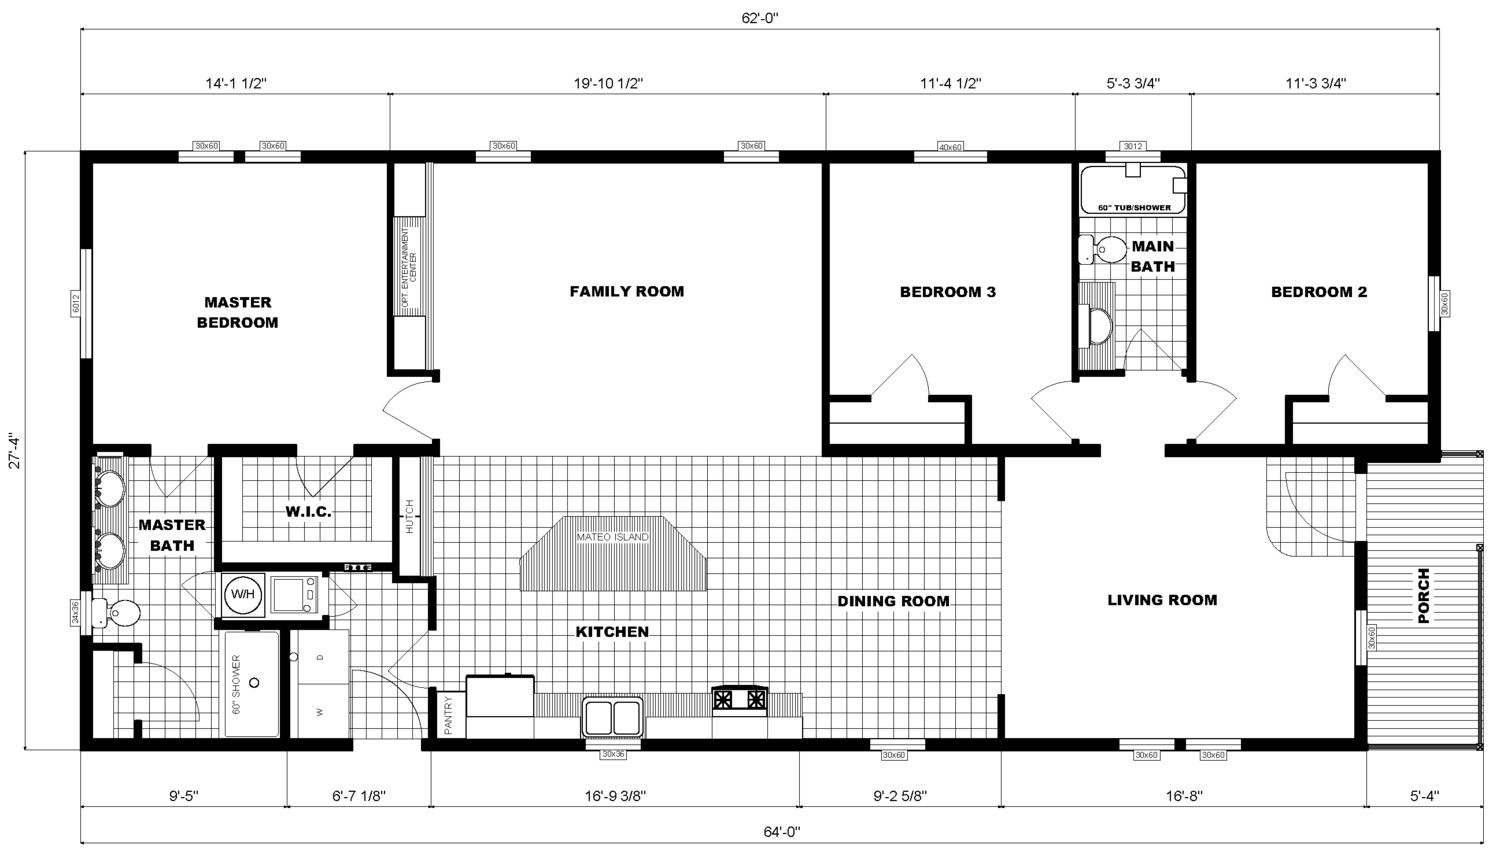 pleasant-valley-g3603-floor-plan.jpg